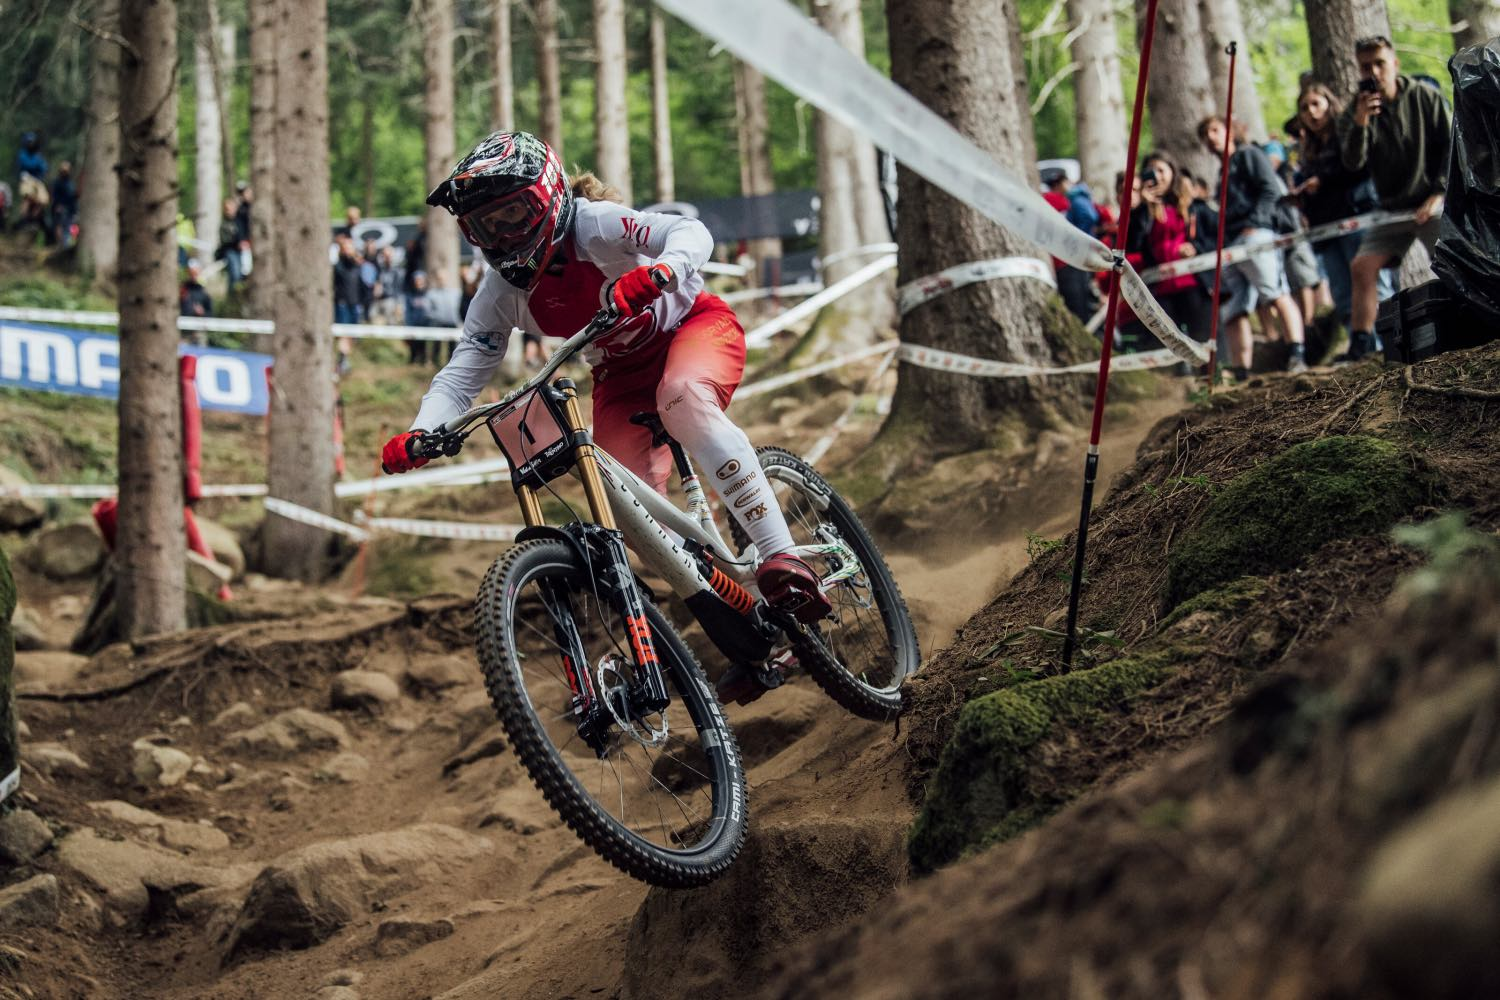 Camille Balanche competing at the 2021 UCI Downhill MTB World Championships